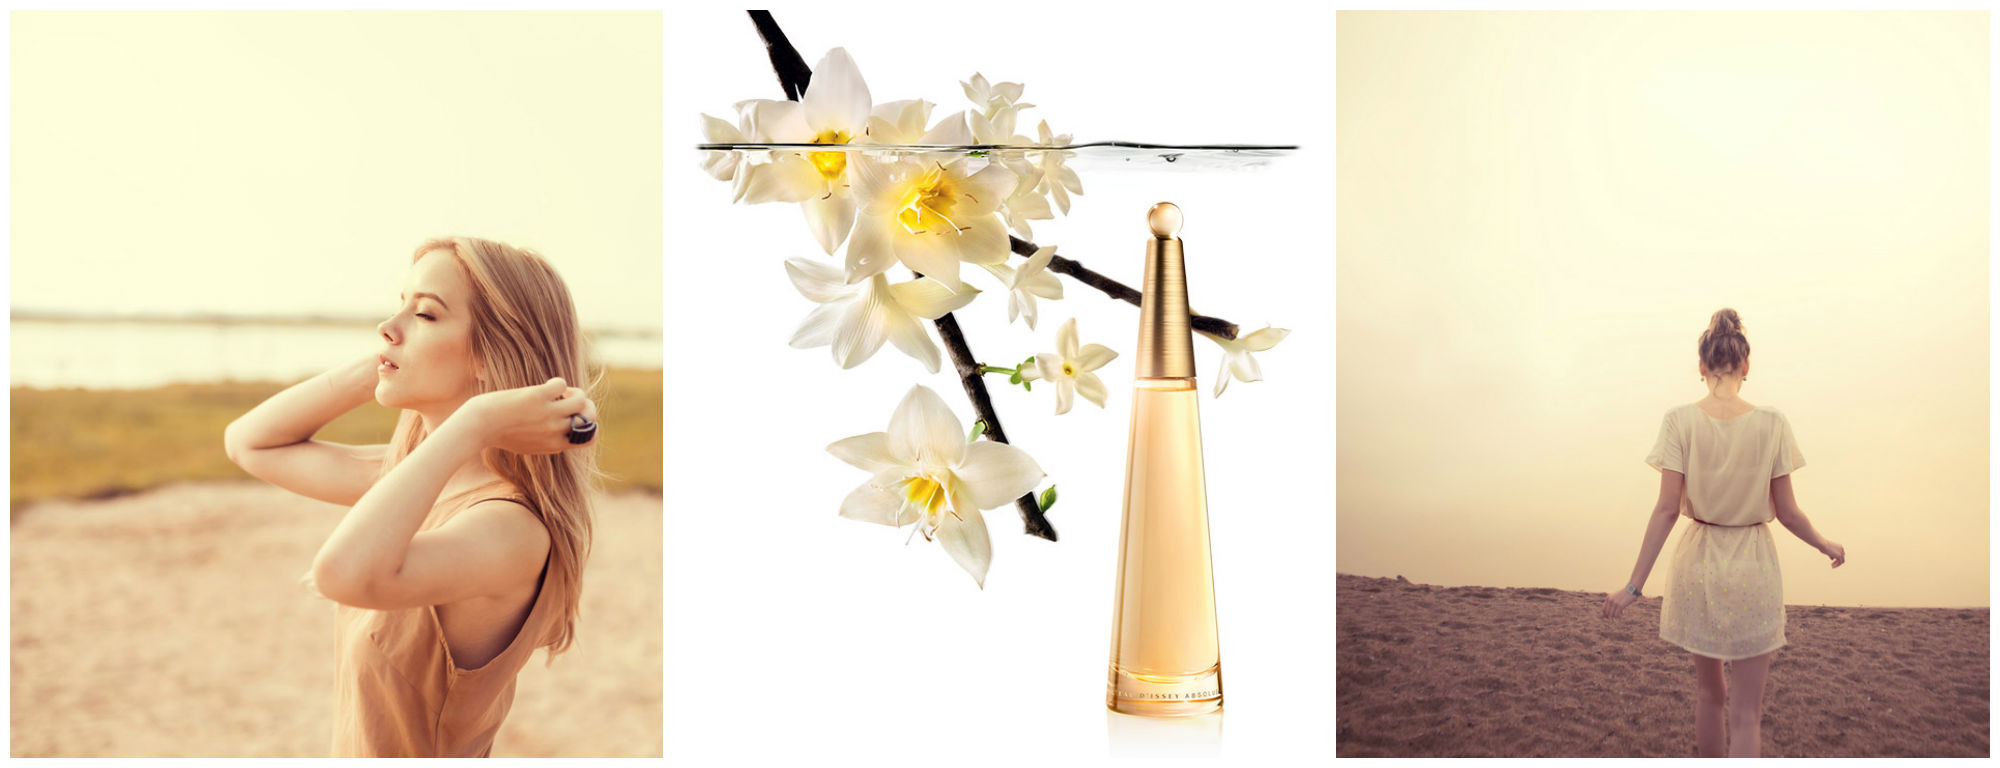 Perfume of the Day: Issey Miyake L'eau D'issey Absolue